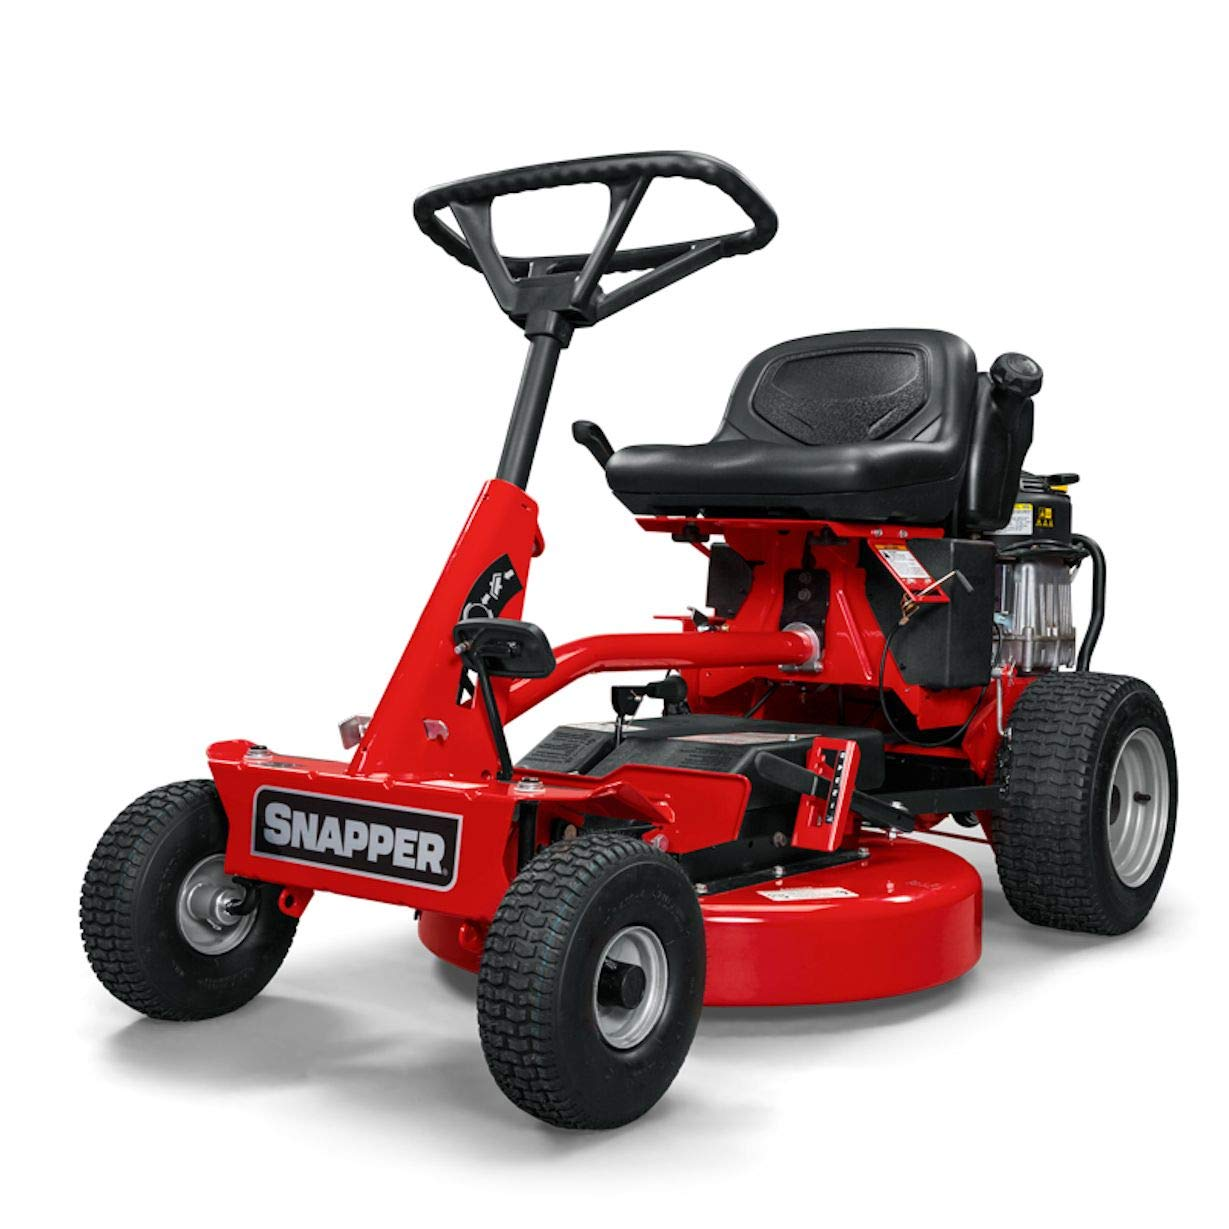 Snapper 2911525BVE Classic Riding Mower  Snapper Lawn Mower Reviews